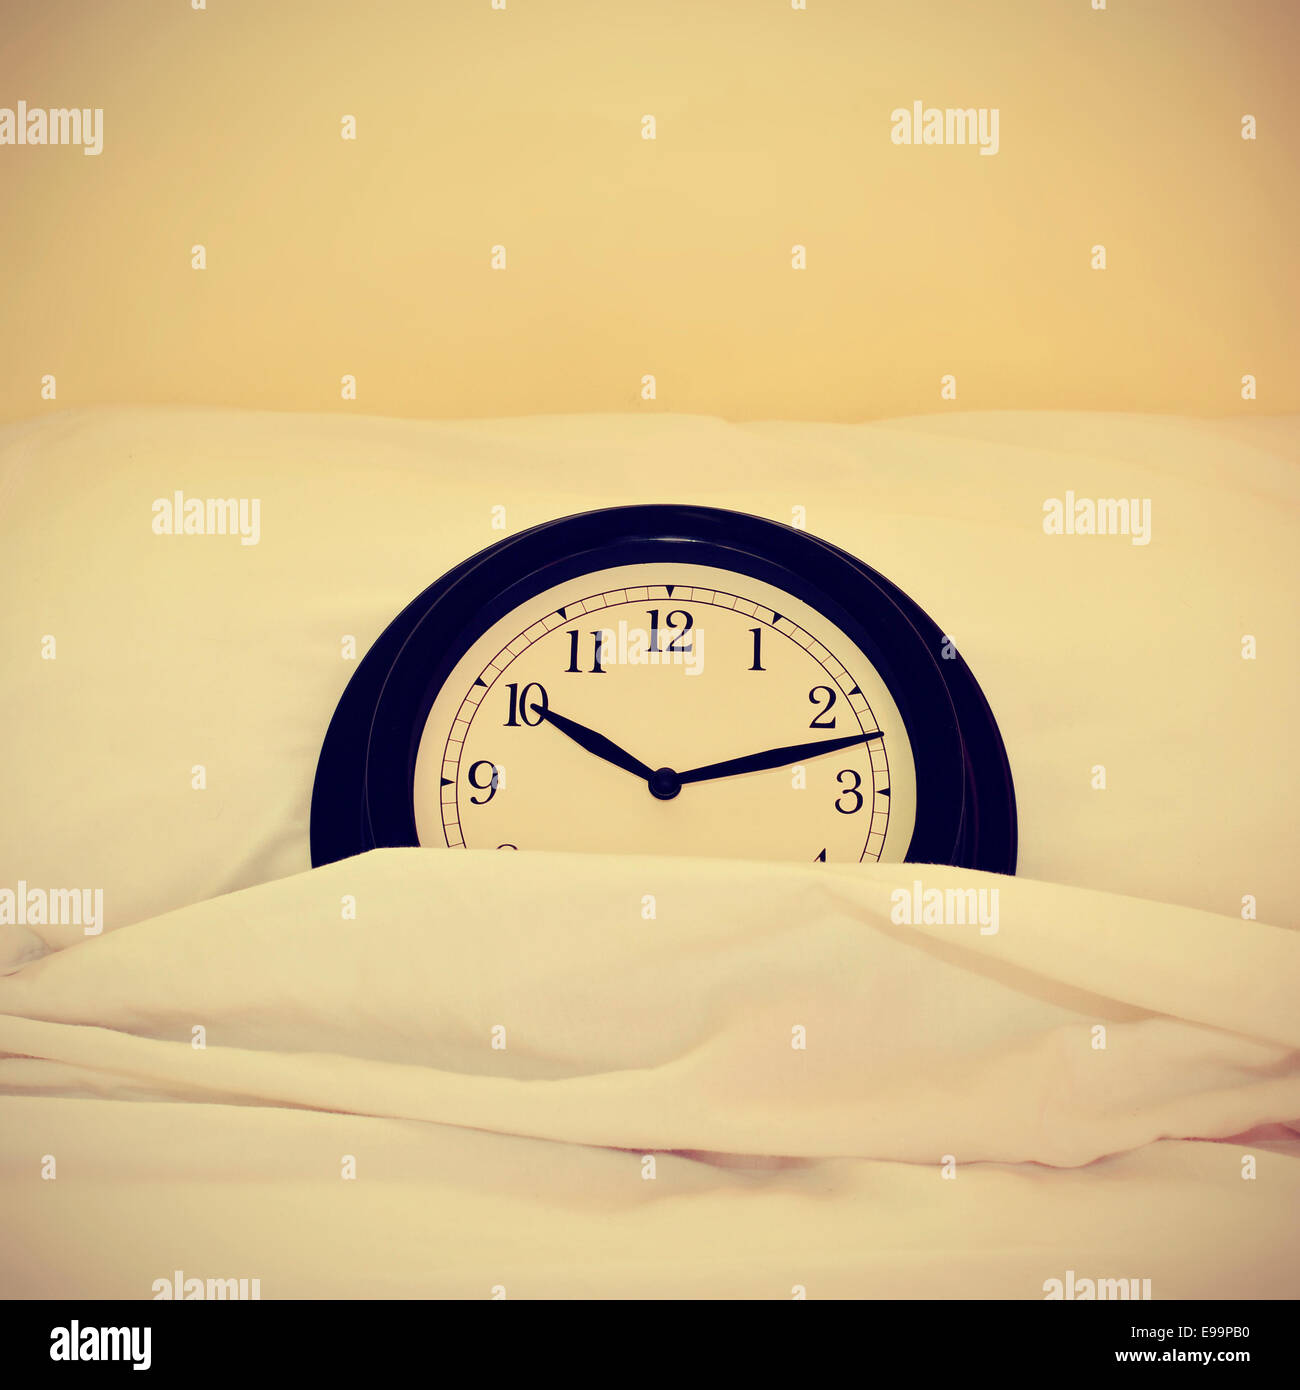 picture of a clock inside a bed, with a retro effect - Stock Image